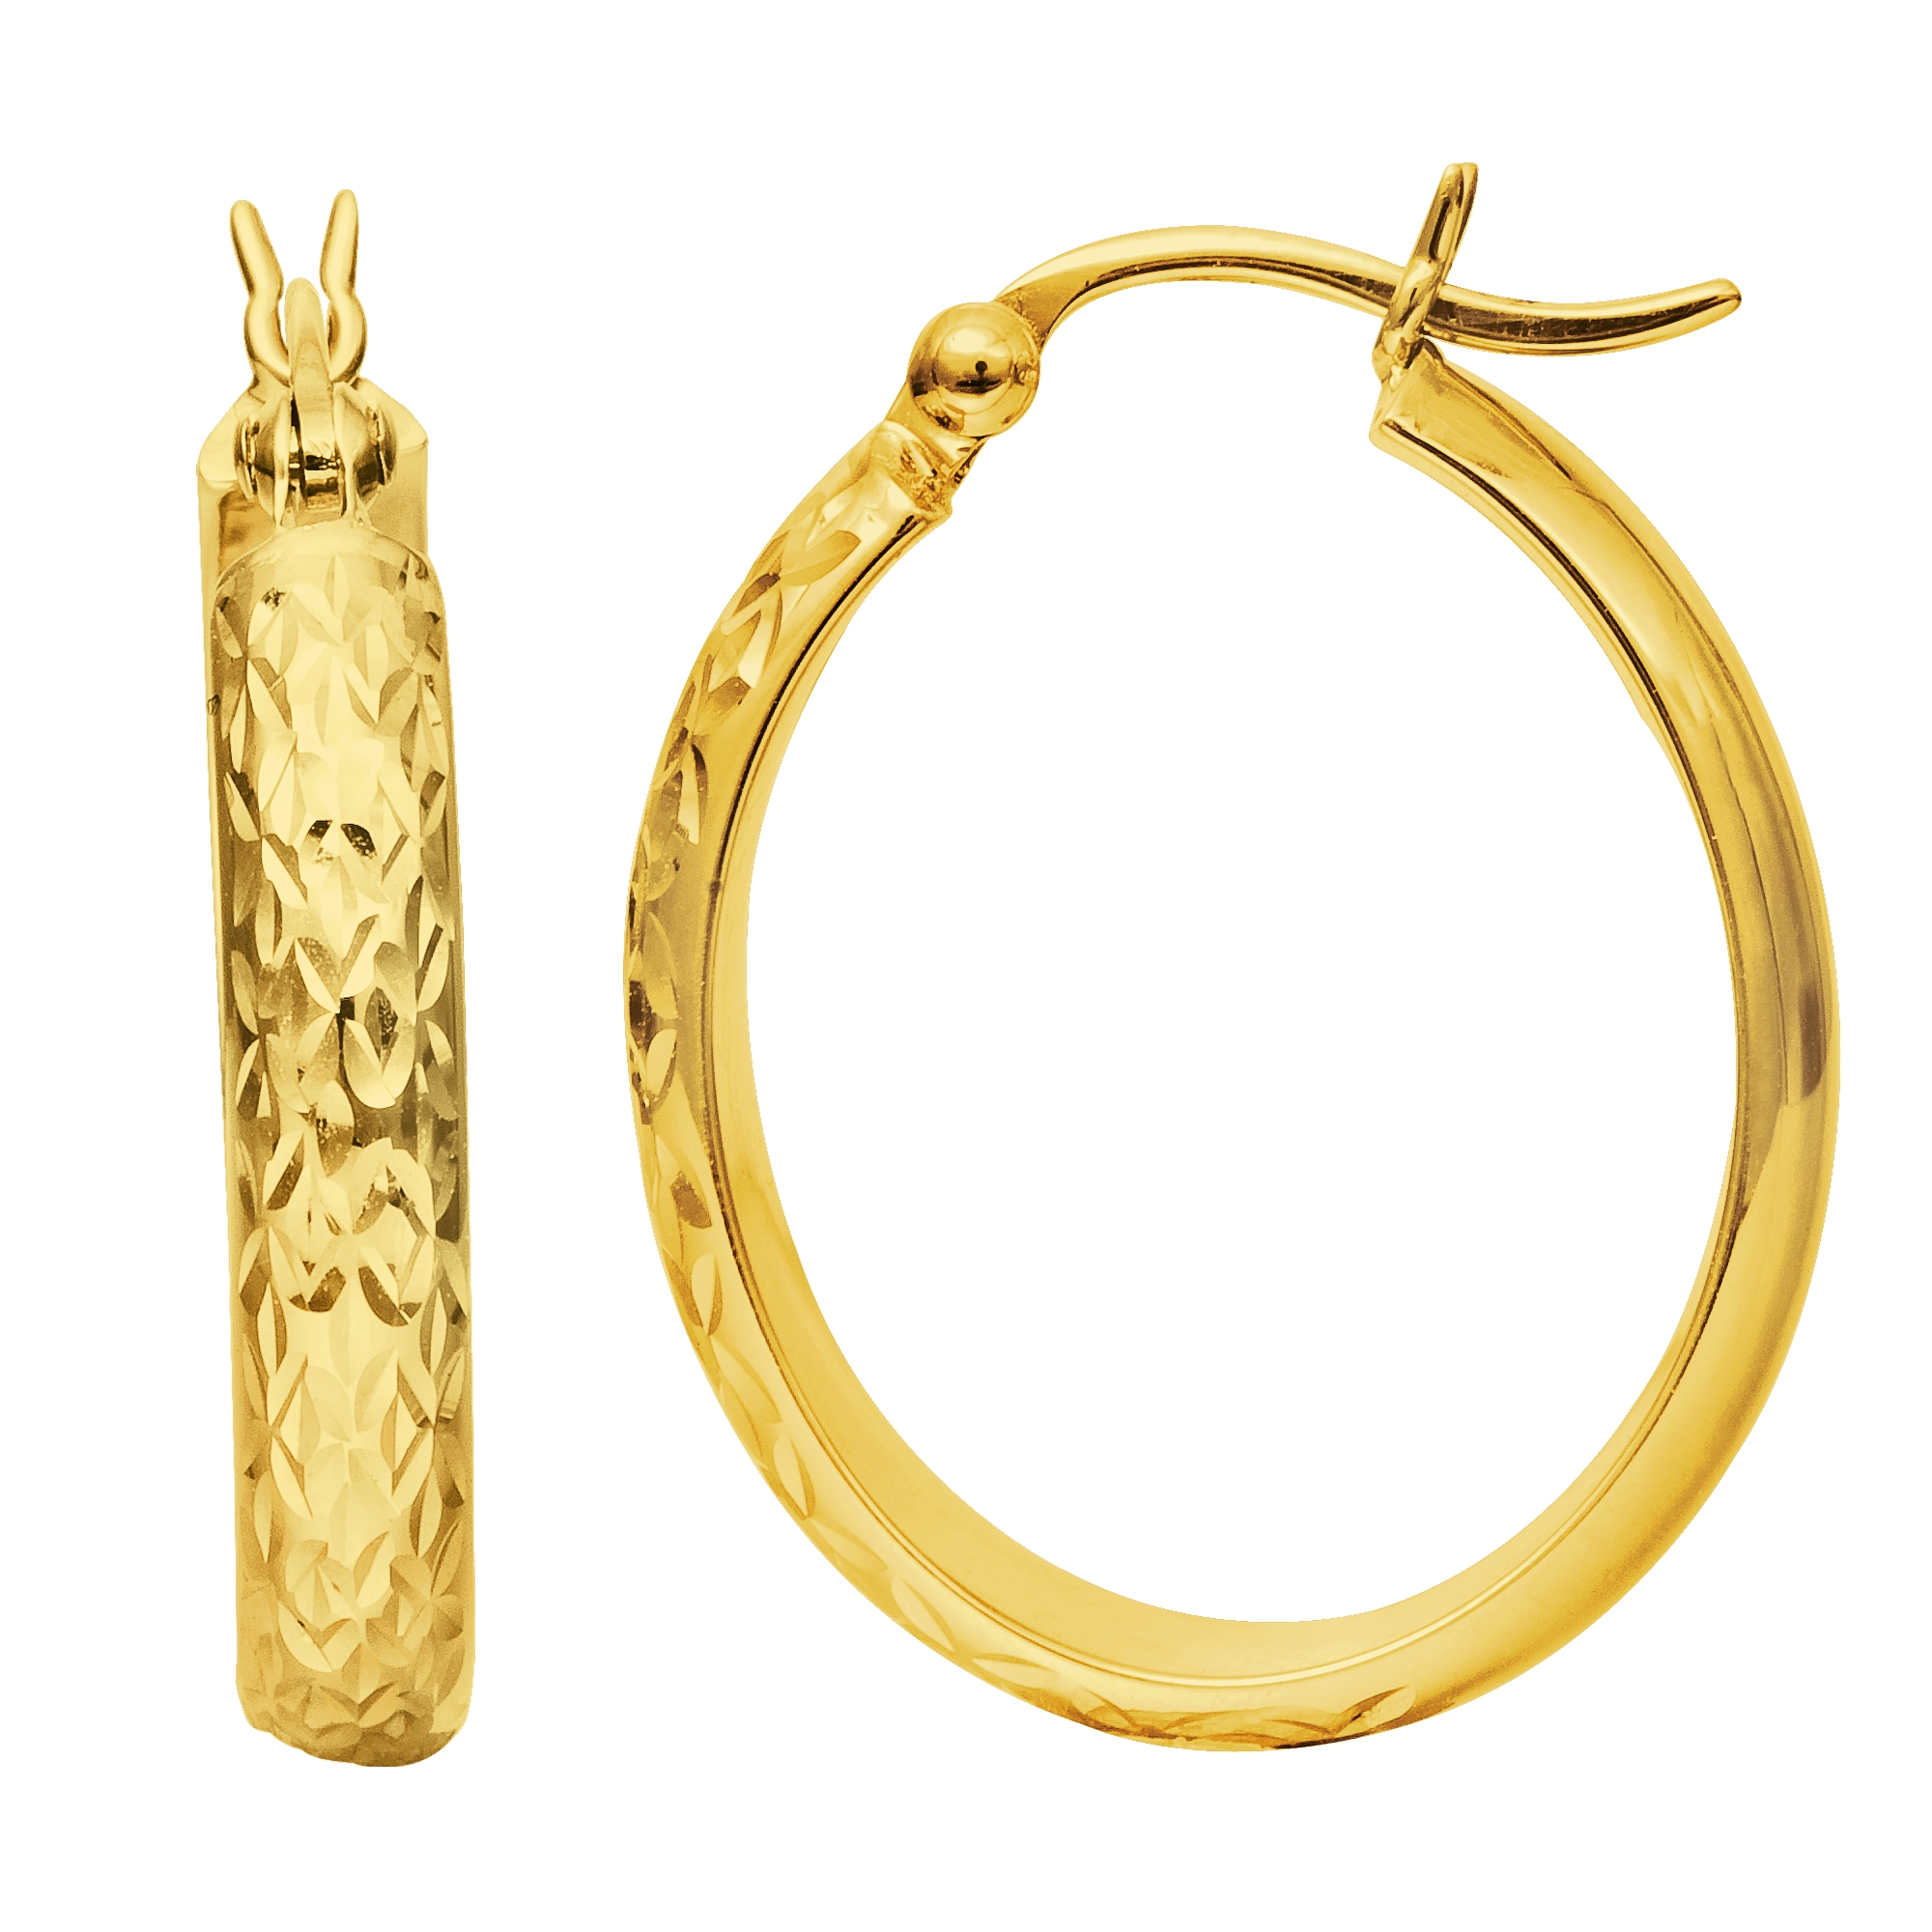 14K Yellow Gold Hammered Polished  Oval Hoop Earrings Complete your jewelry collection with a gorgeous pair of 14K hoop earrings. These oval earrings have a secure snap post clasp making them easy to wear and remove. Earrings come in a  gift box making them ready to be gifted.